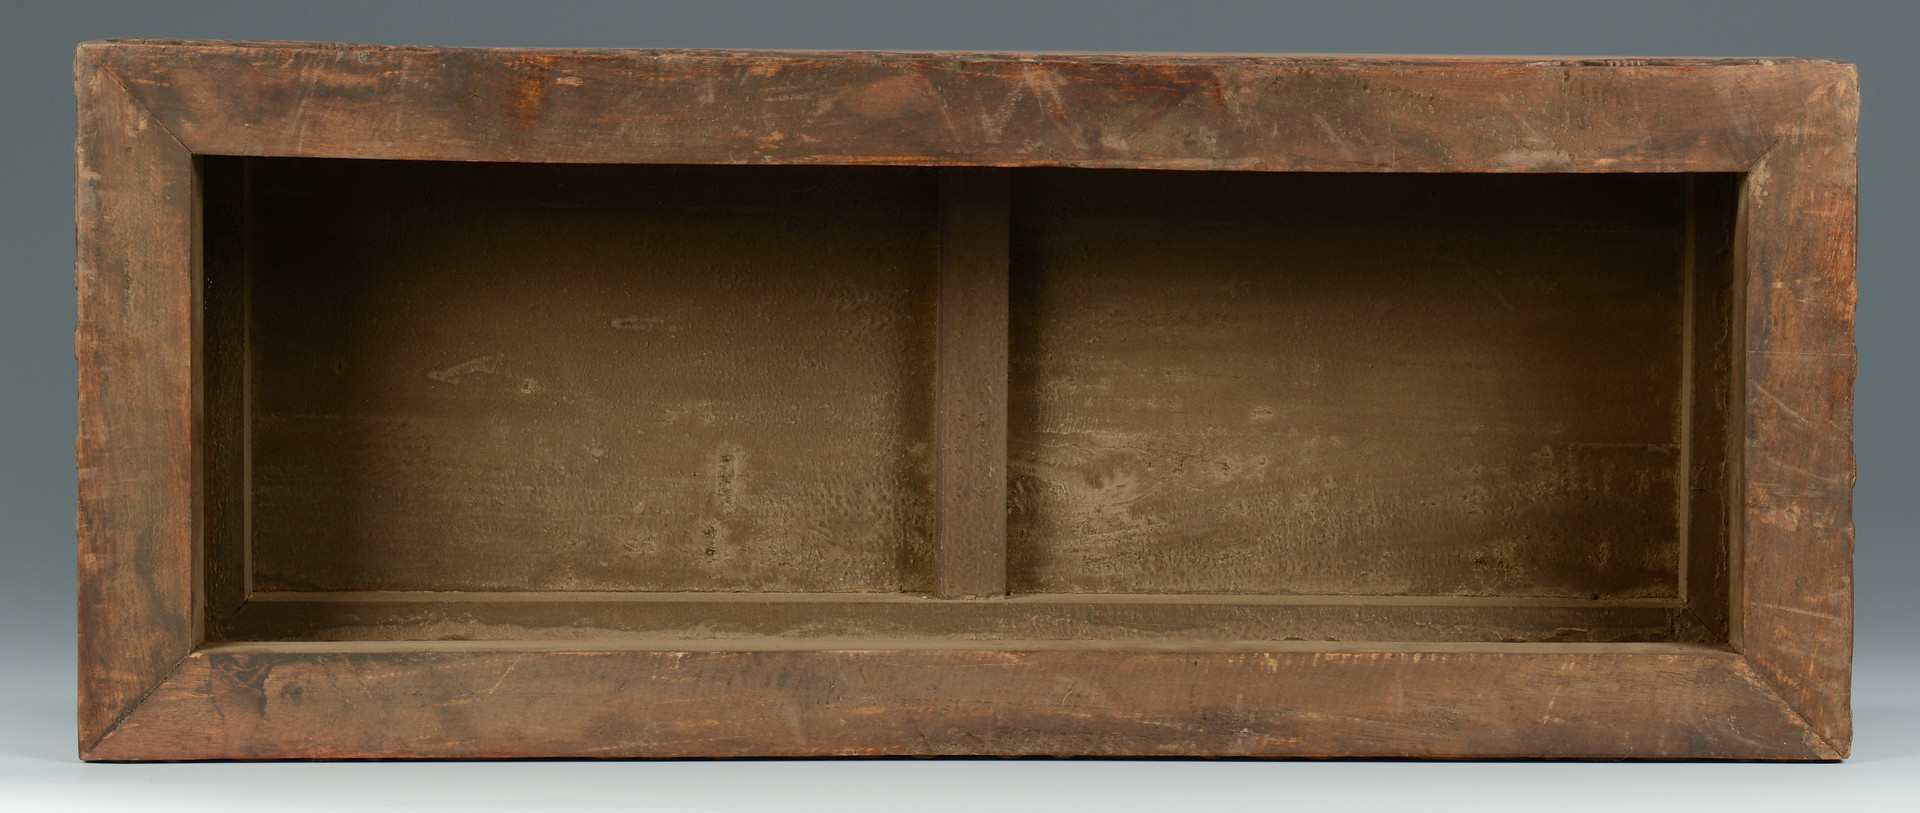 Lot 561: Chinese Hardwood Low Table